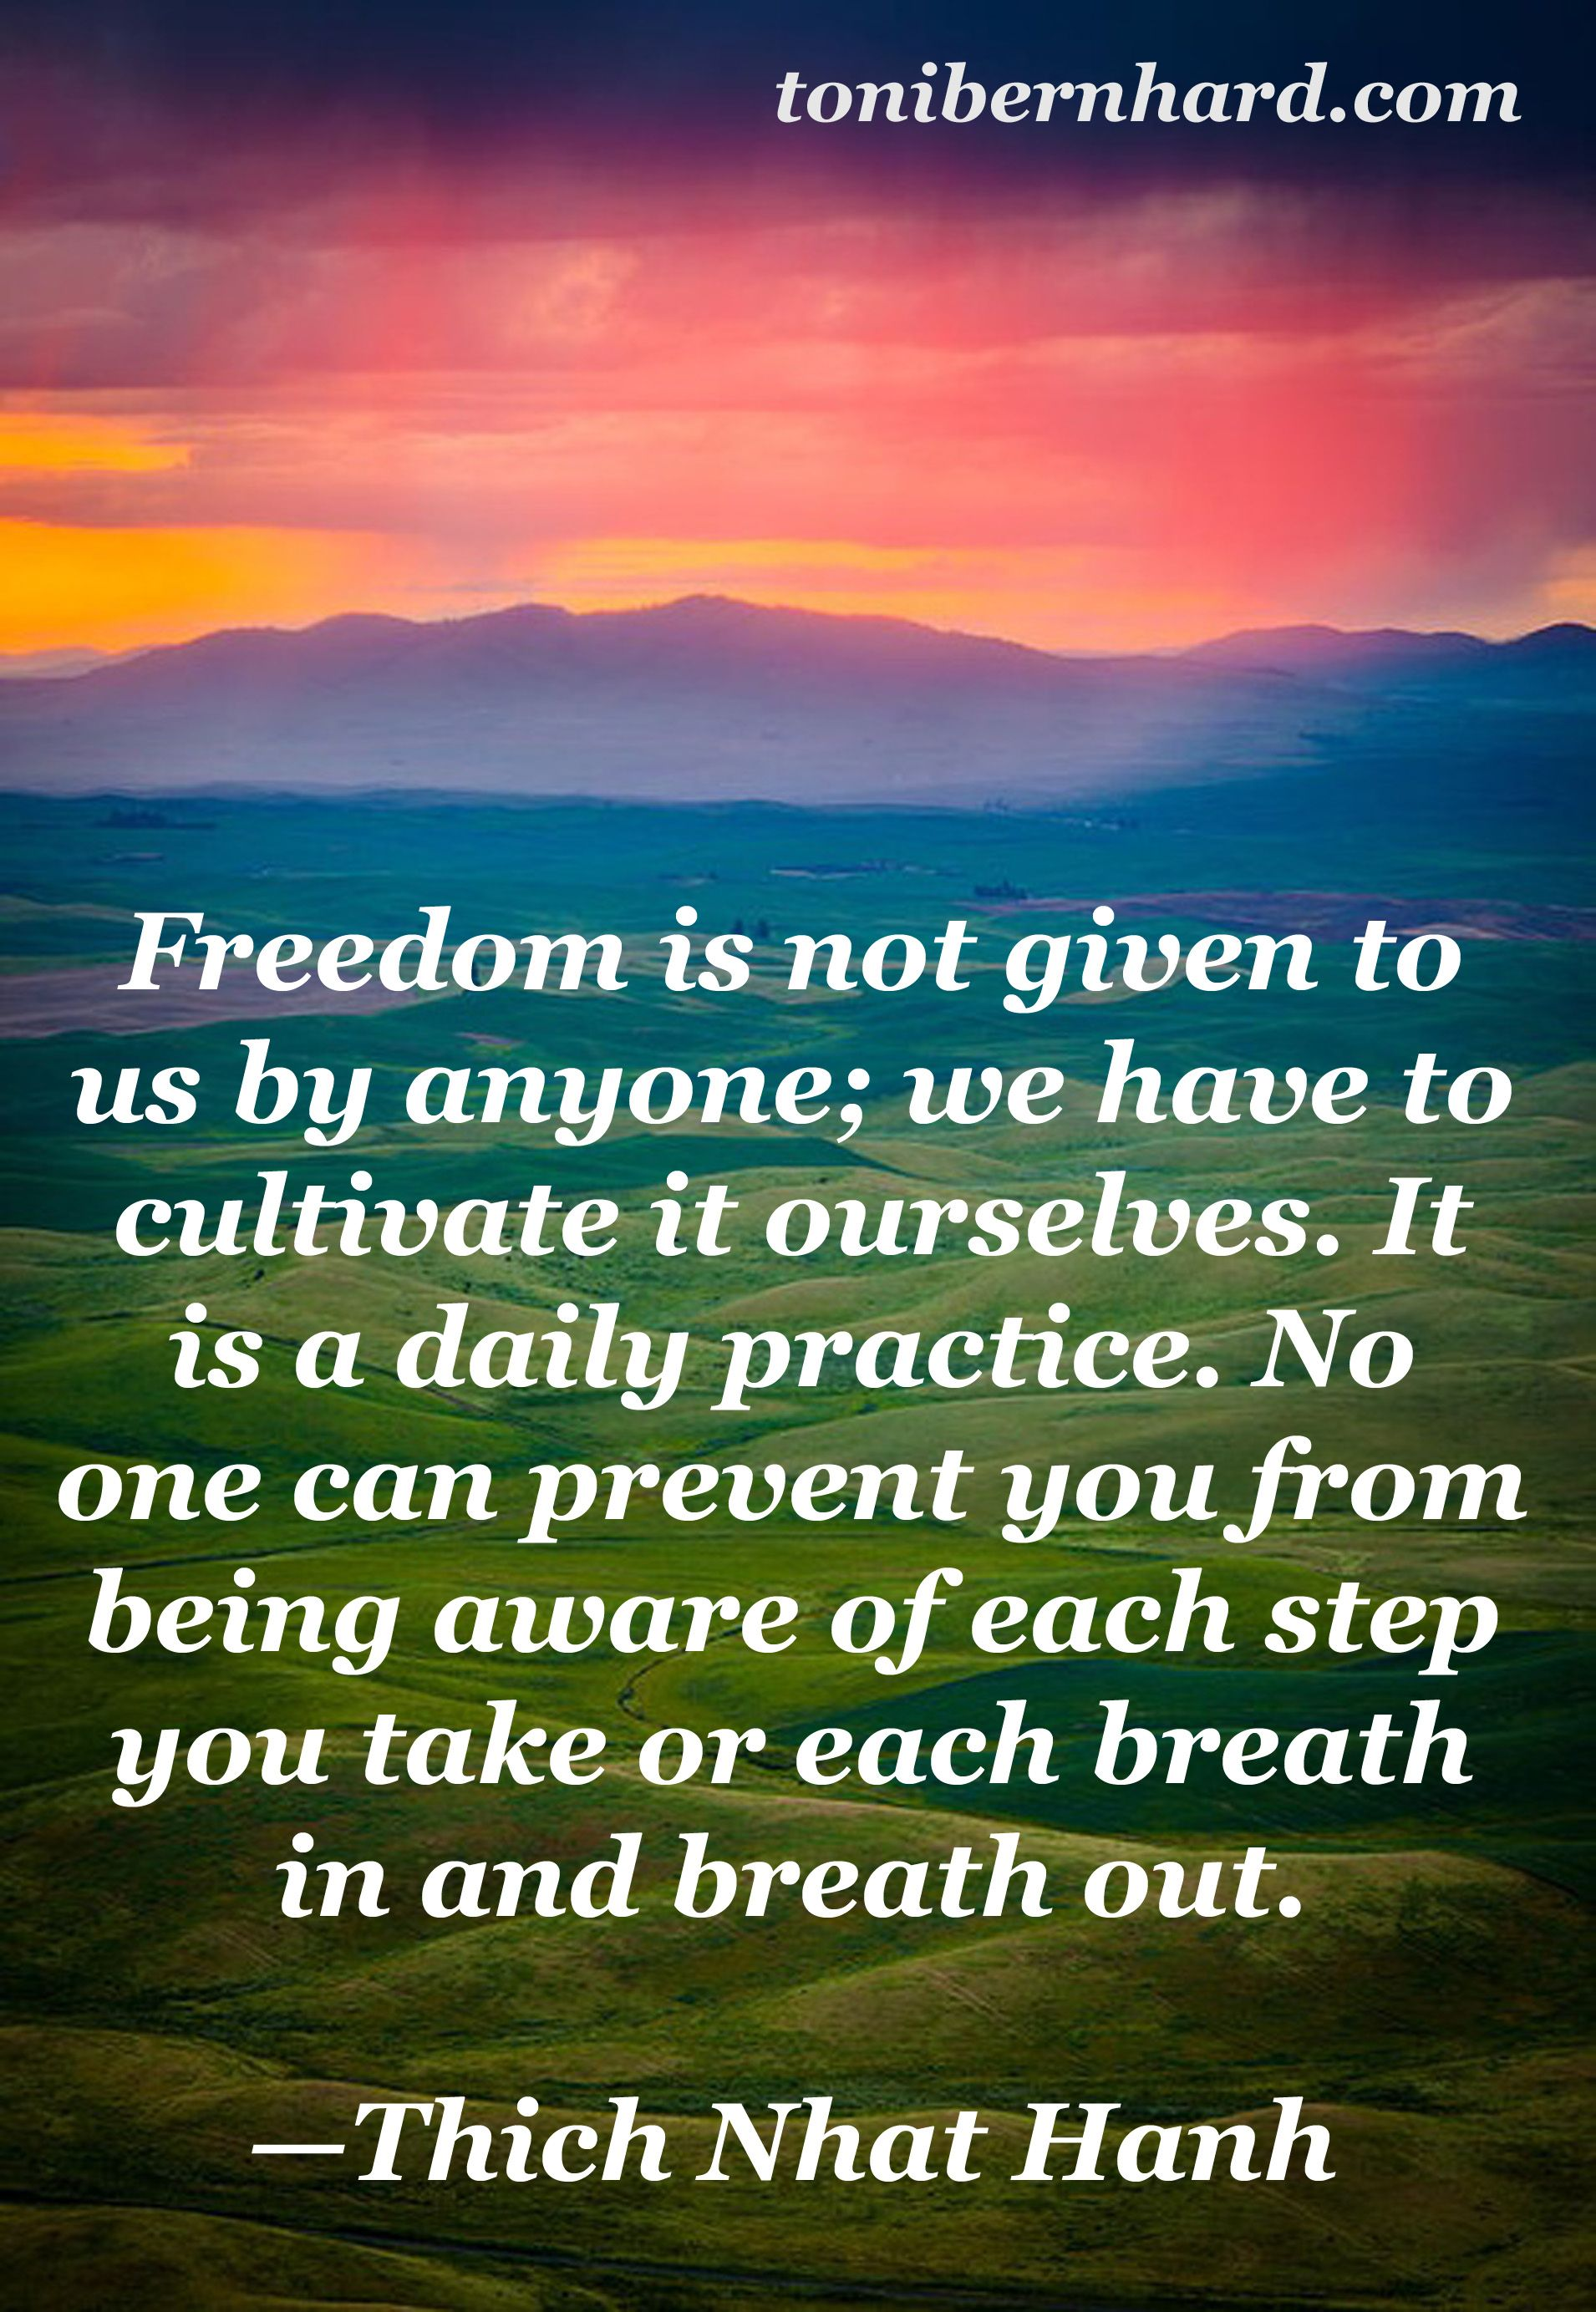 Freedom Thich Nhat Hanh Buddhist Quotes Buddhist Wisdom Thich Nhat Hanh Quotes